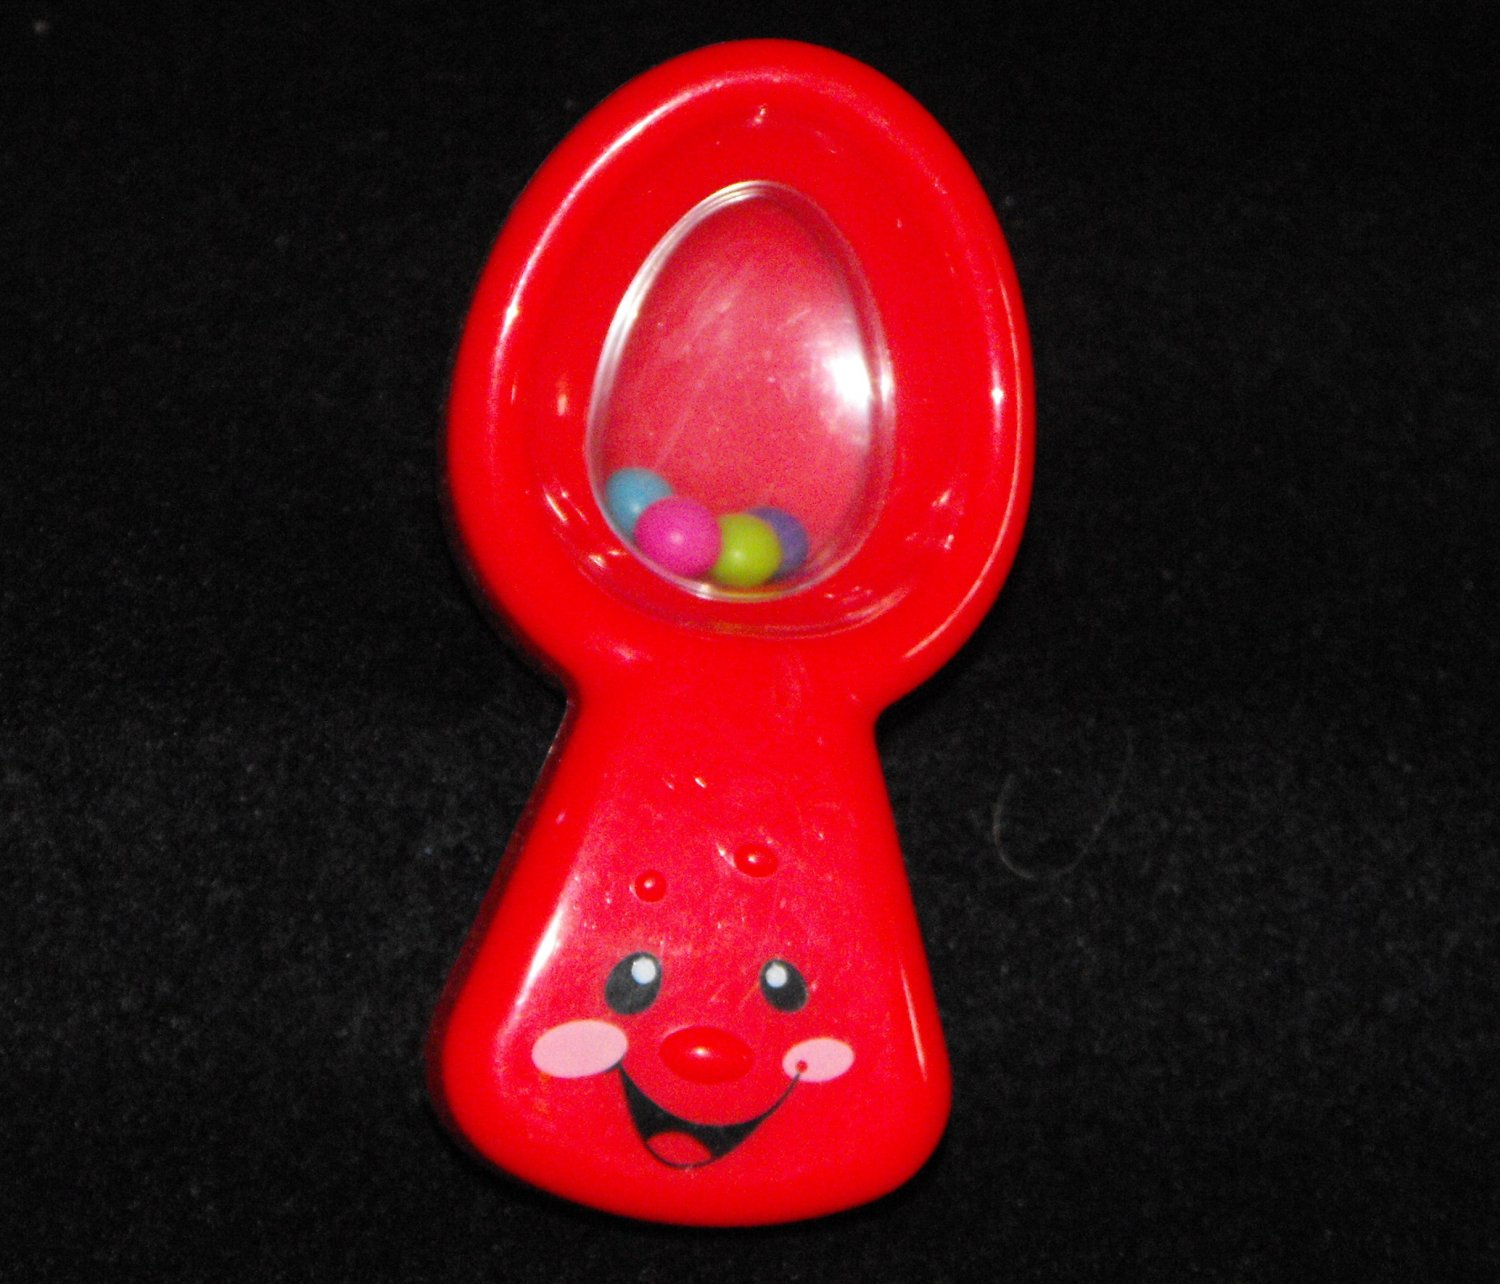 Fisher Price Laugh and Learn Table Replacement Spoon Part